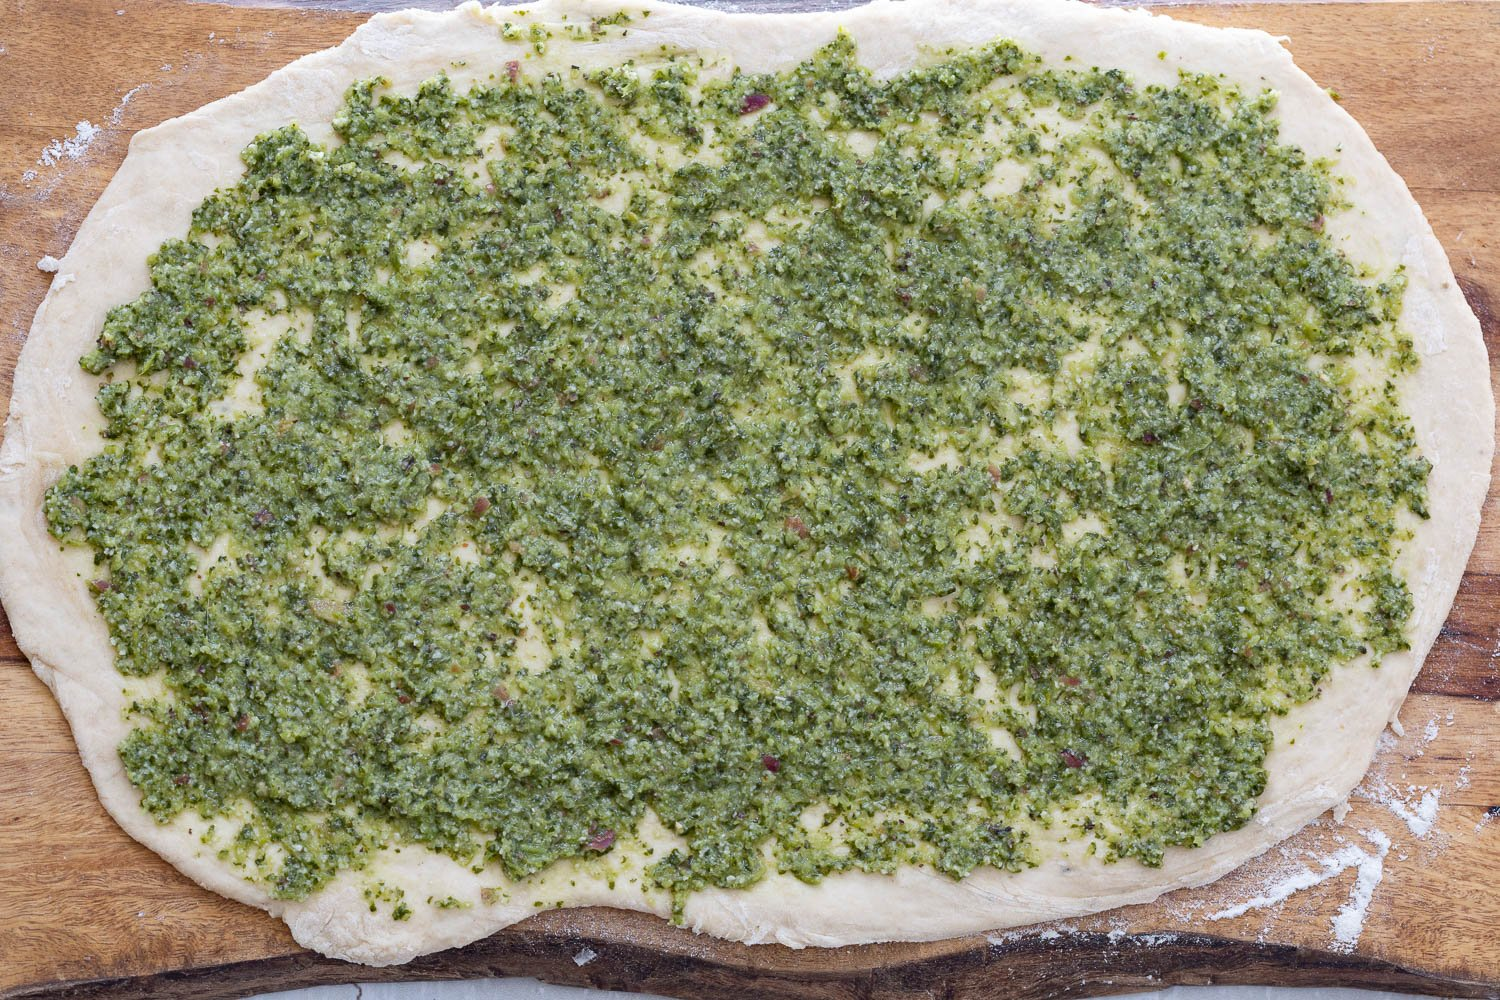 vegan pesto being spread onto rolled out pizza rolls dough